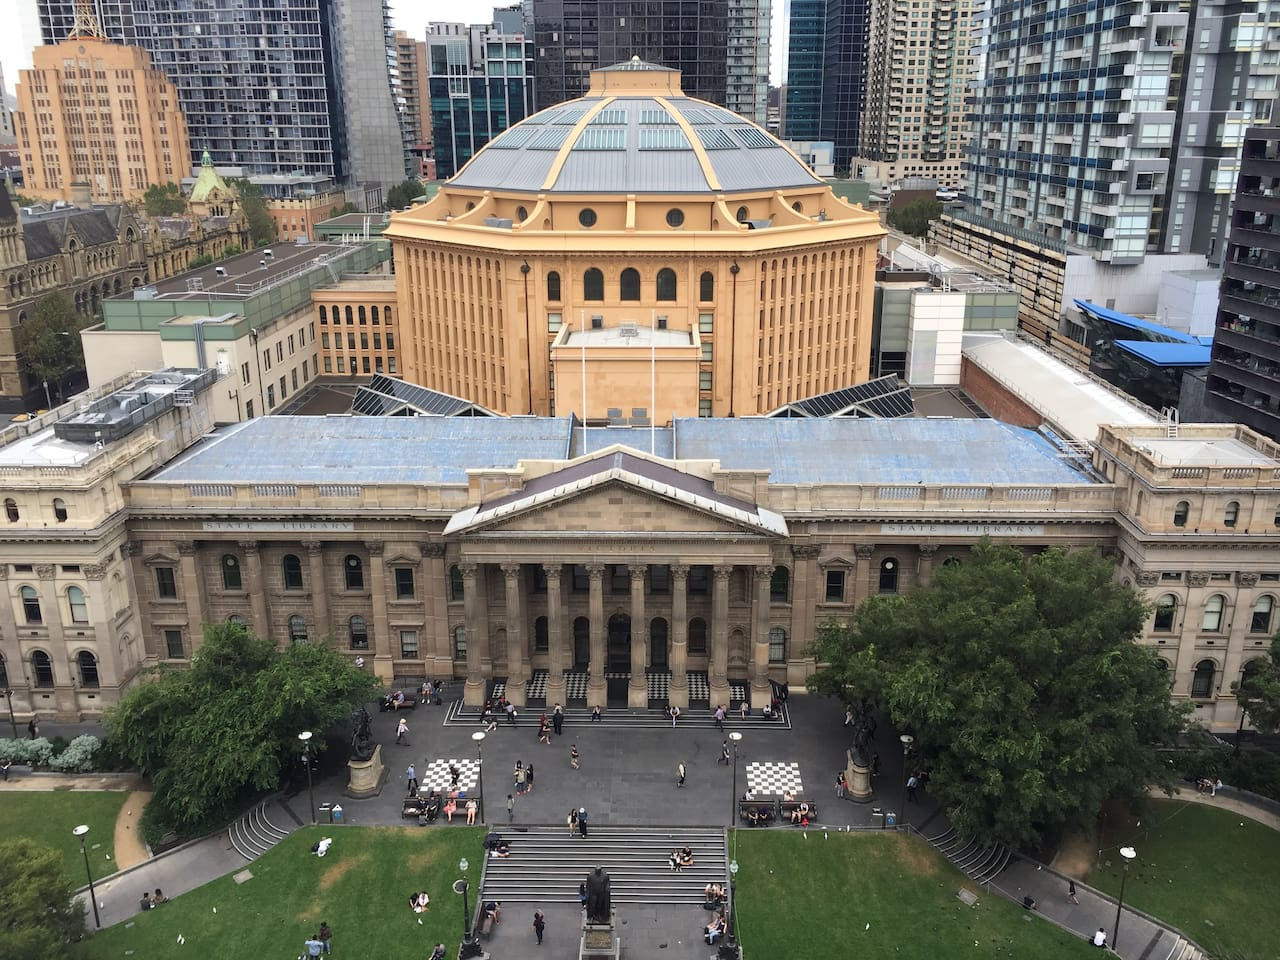 View of John Monash's Dome on the State Library